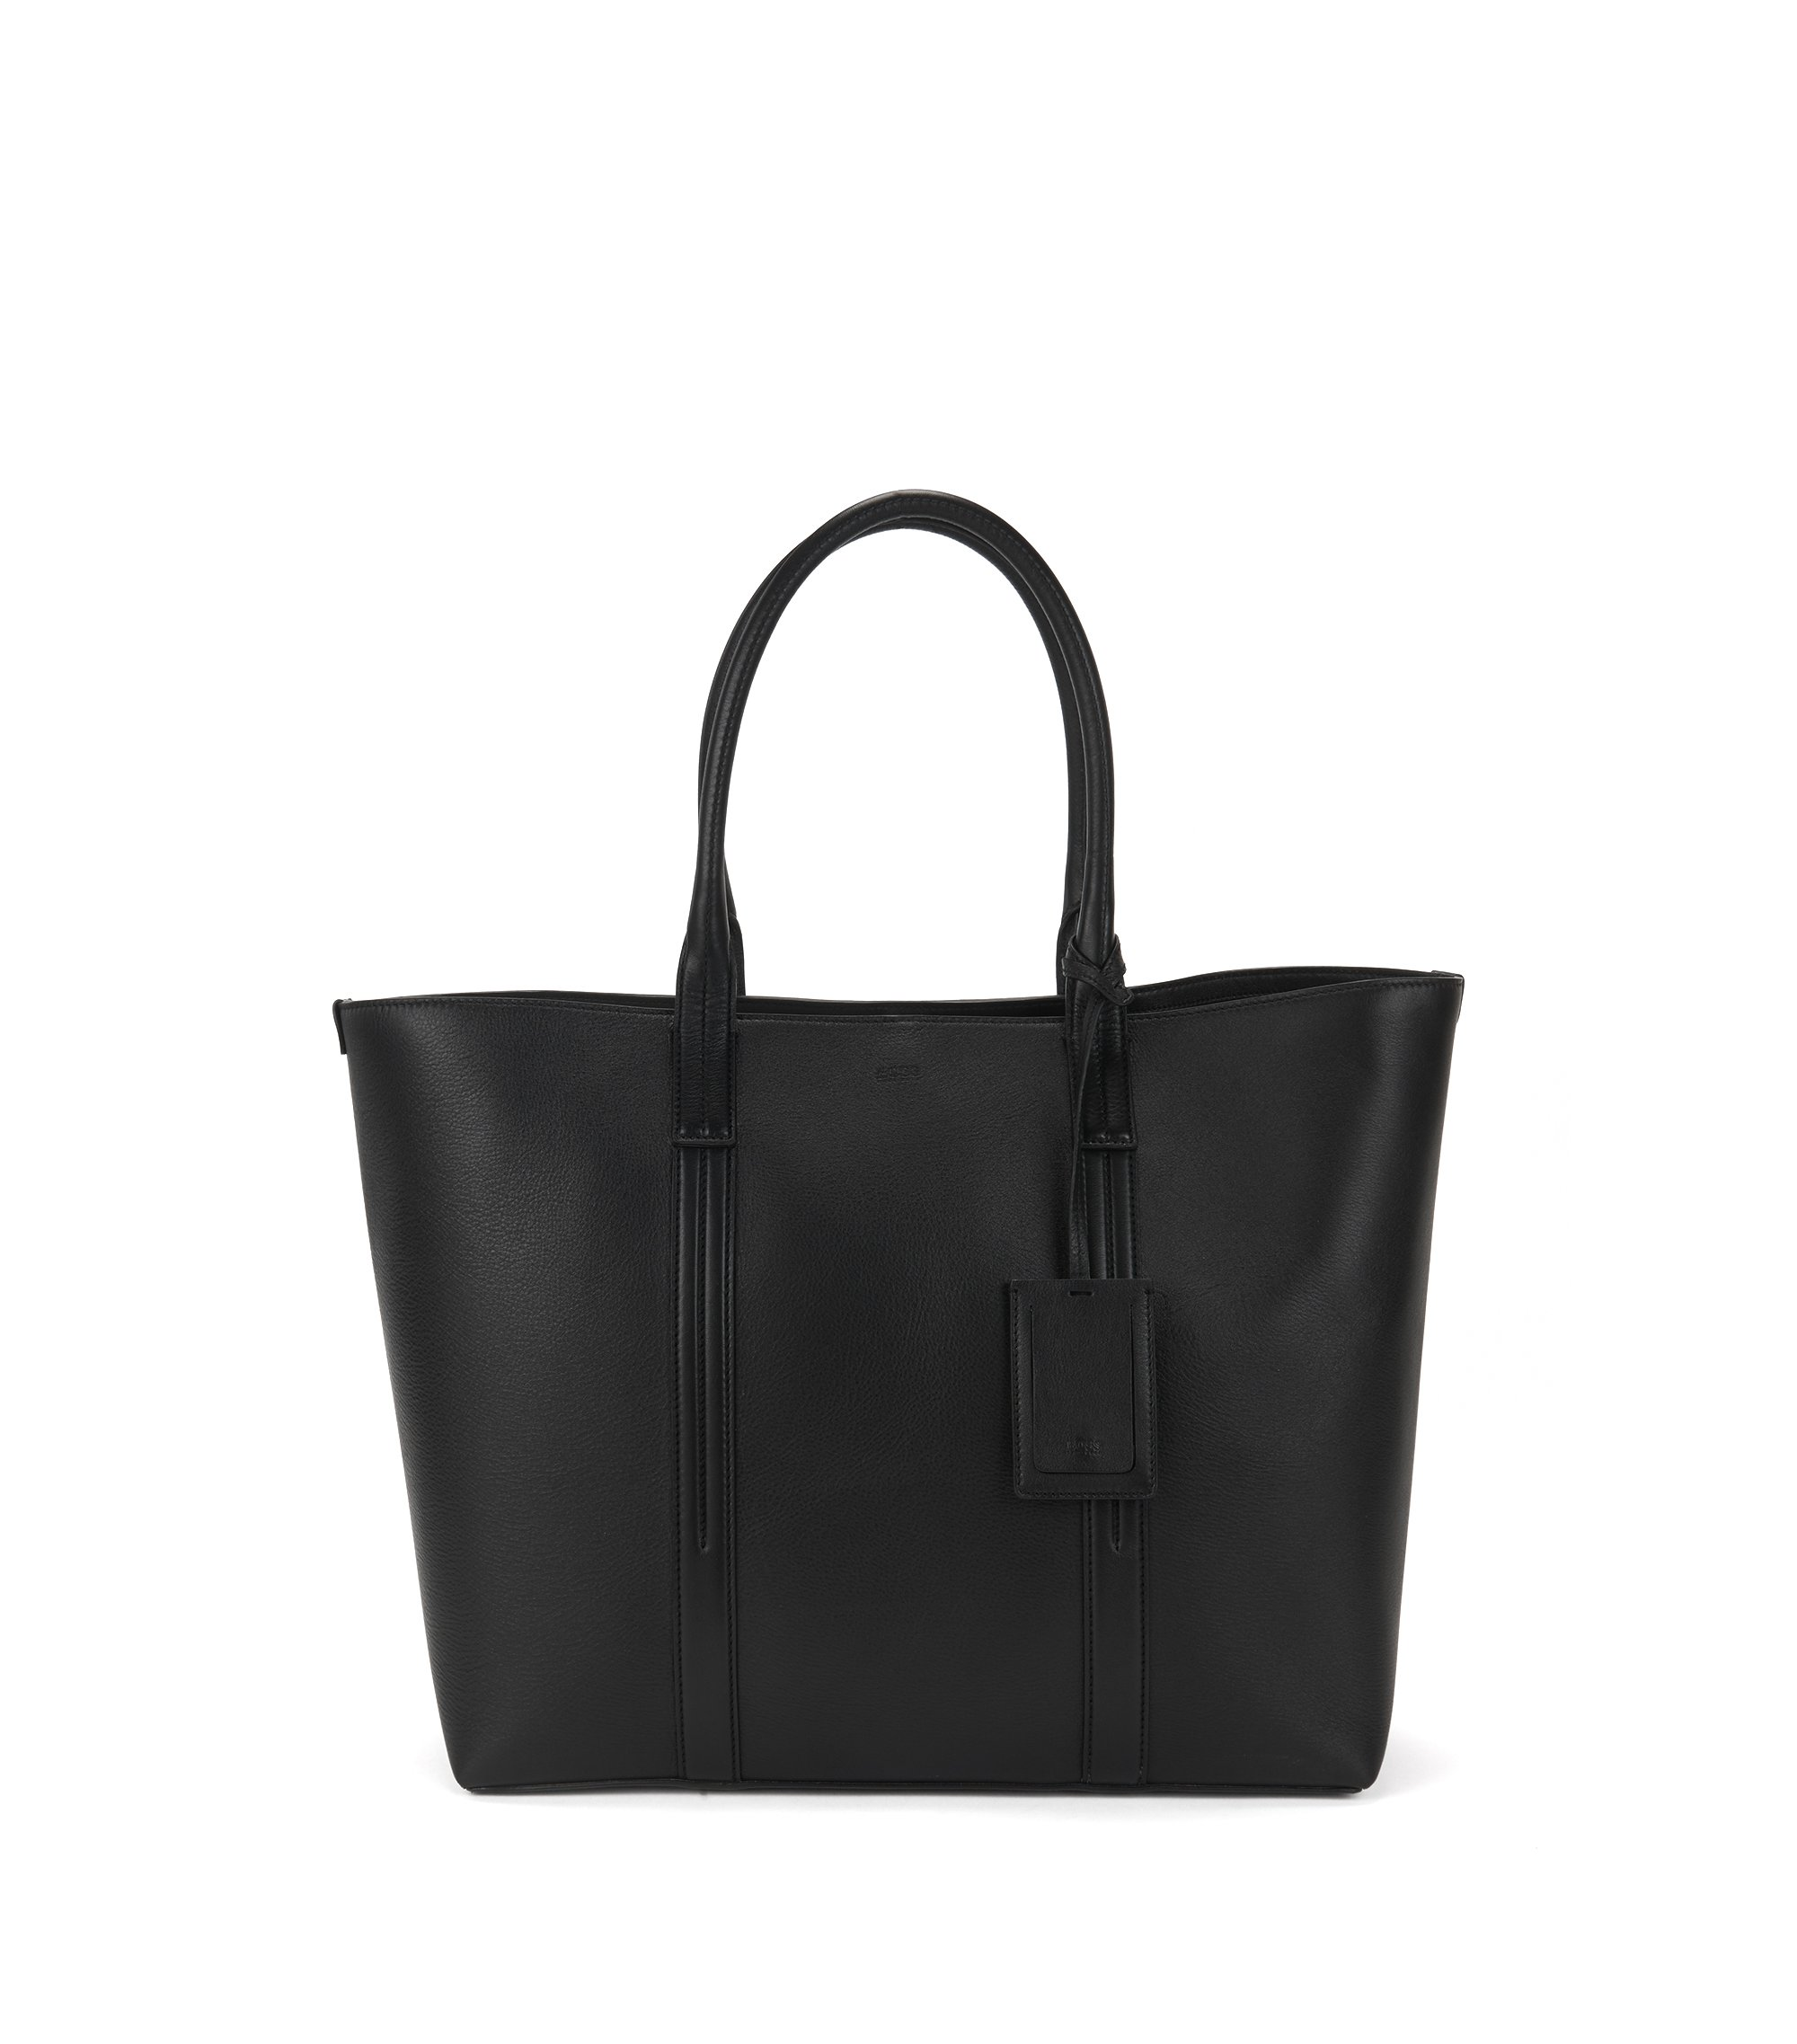 Printed Leather Tote Bag | Tenn BB_Tote, Black